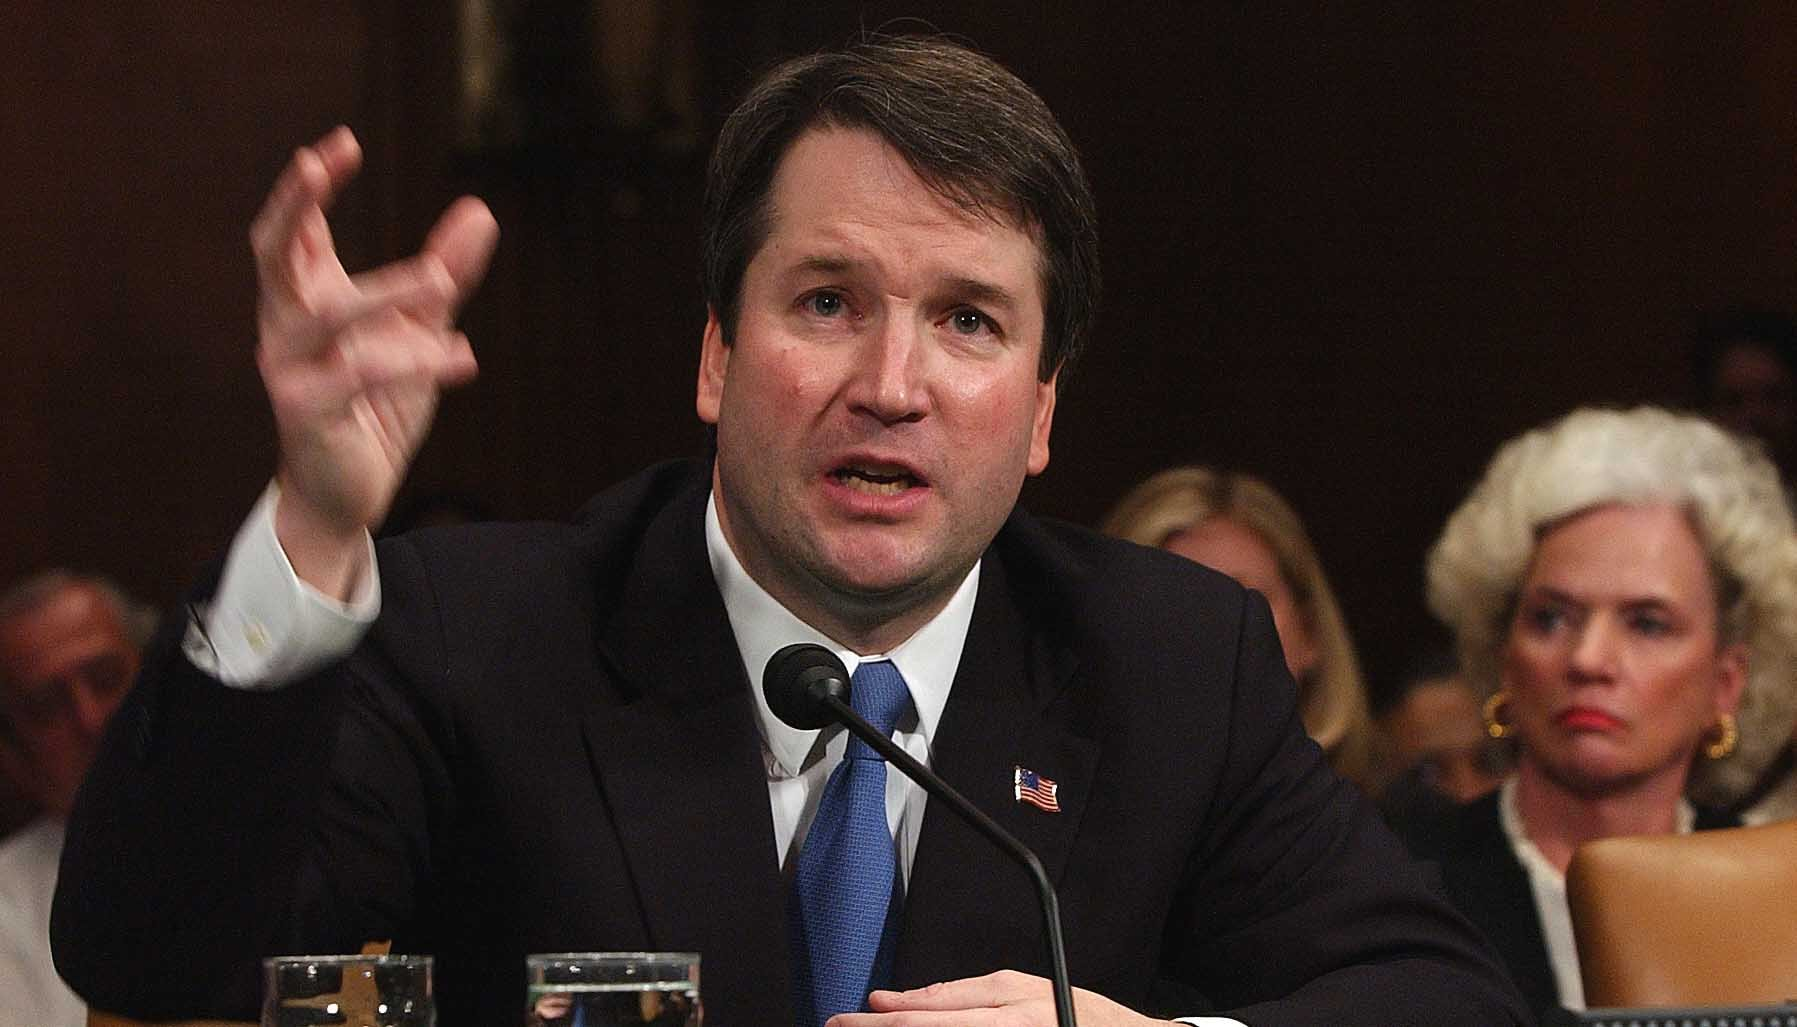 Liberals attack Brett Kavanaugh for 'frat boy' name